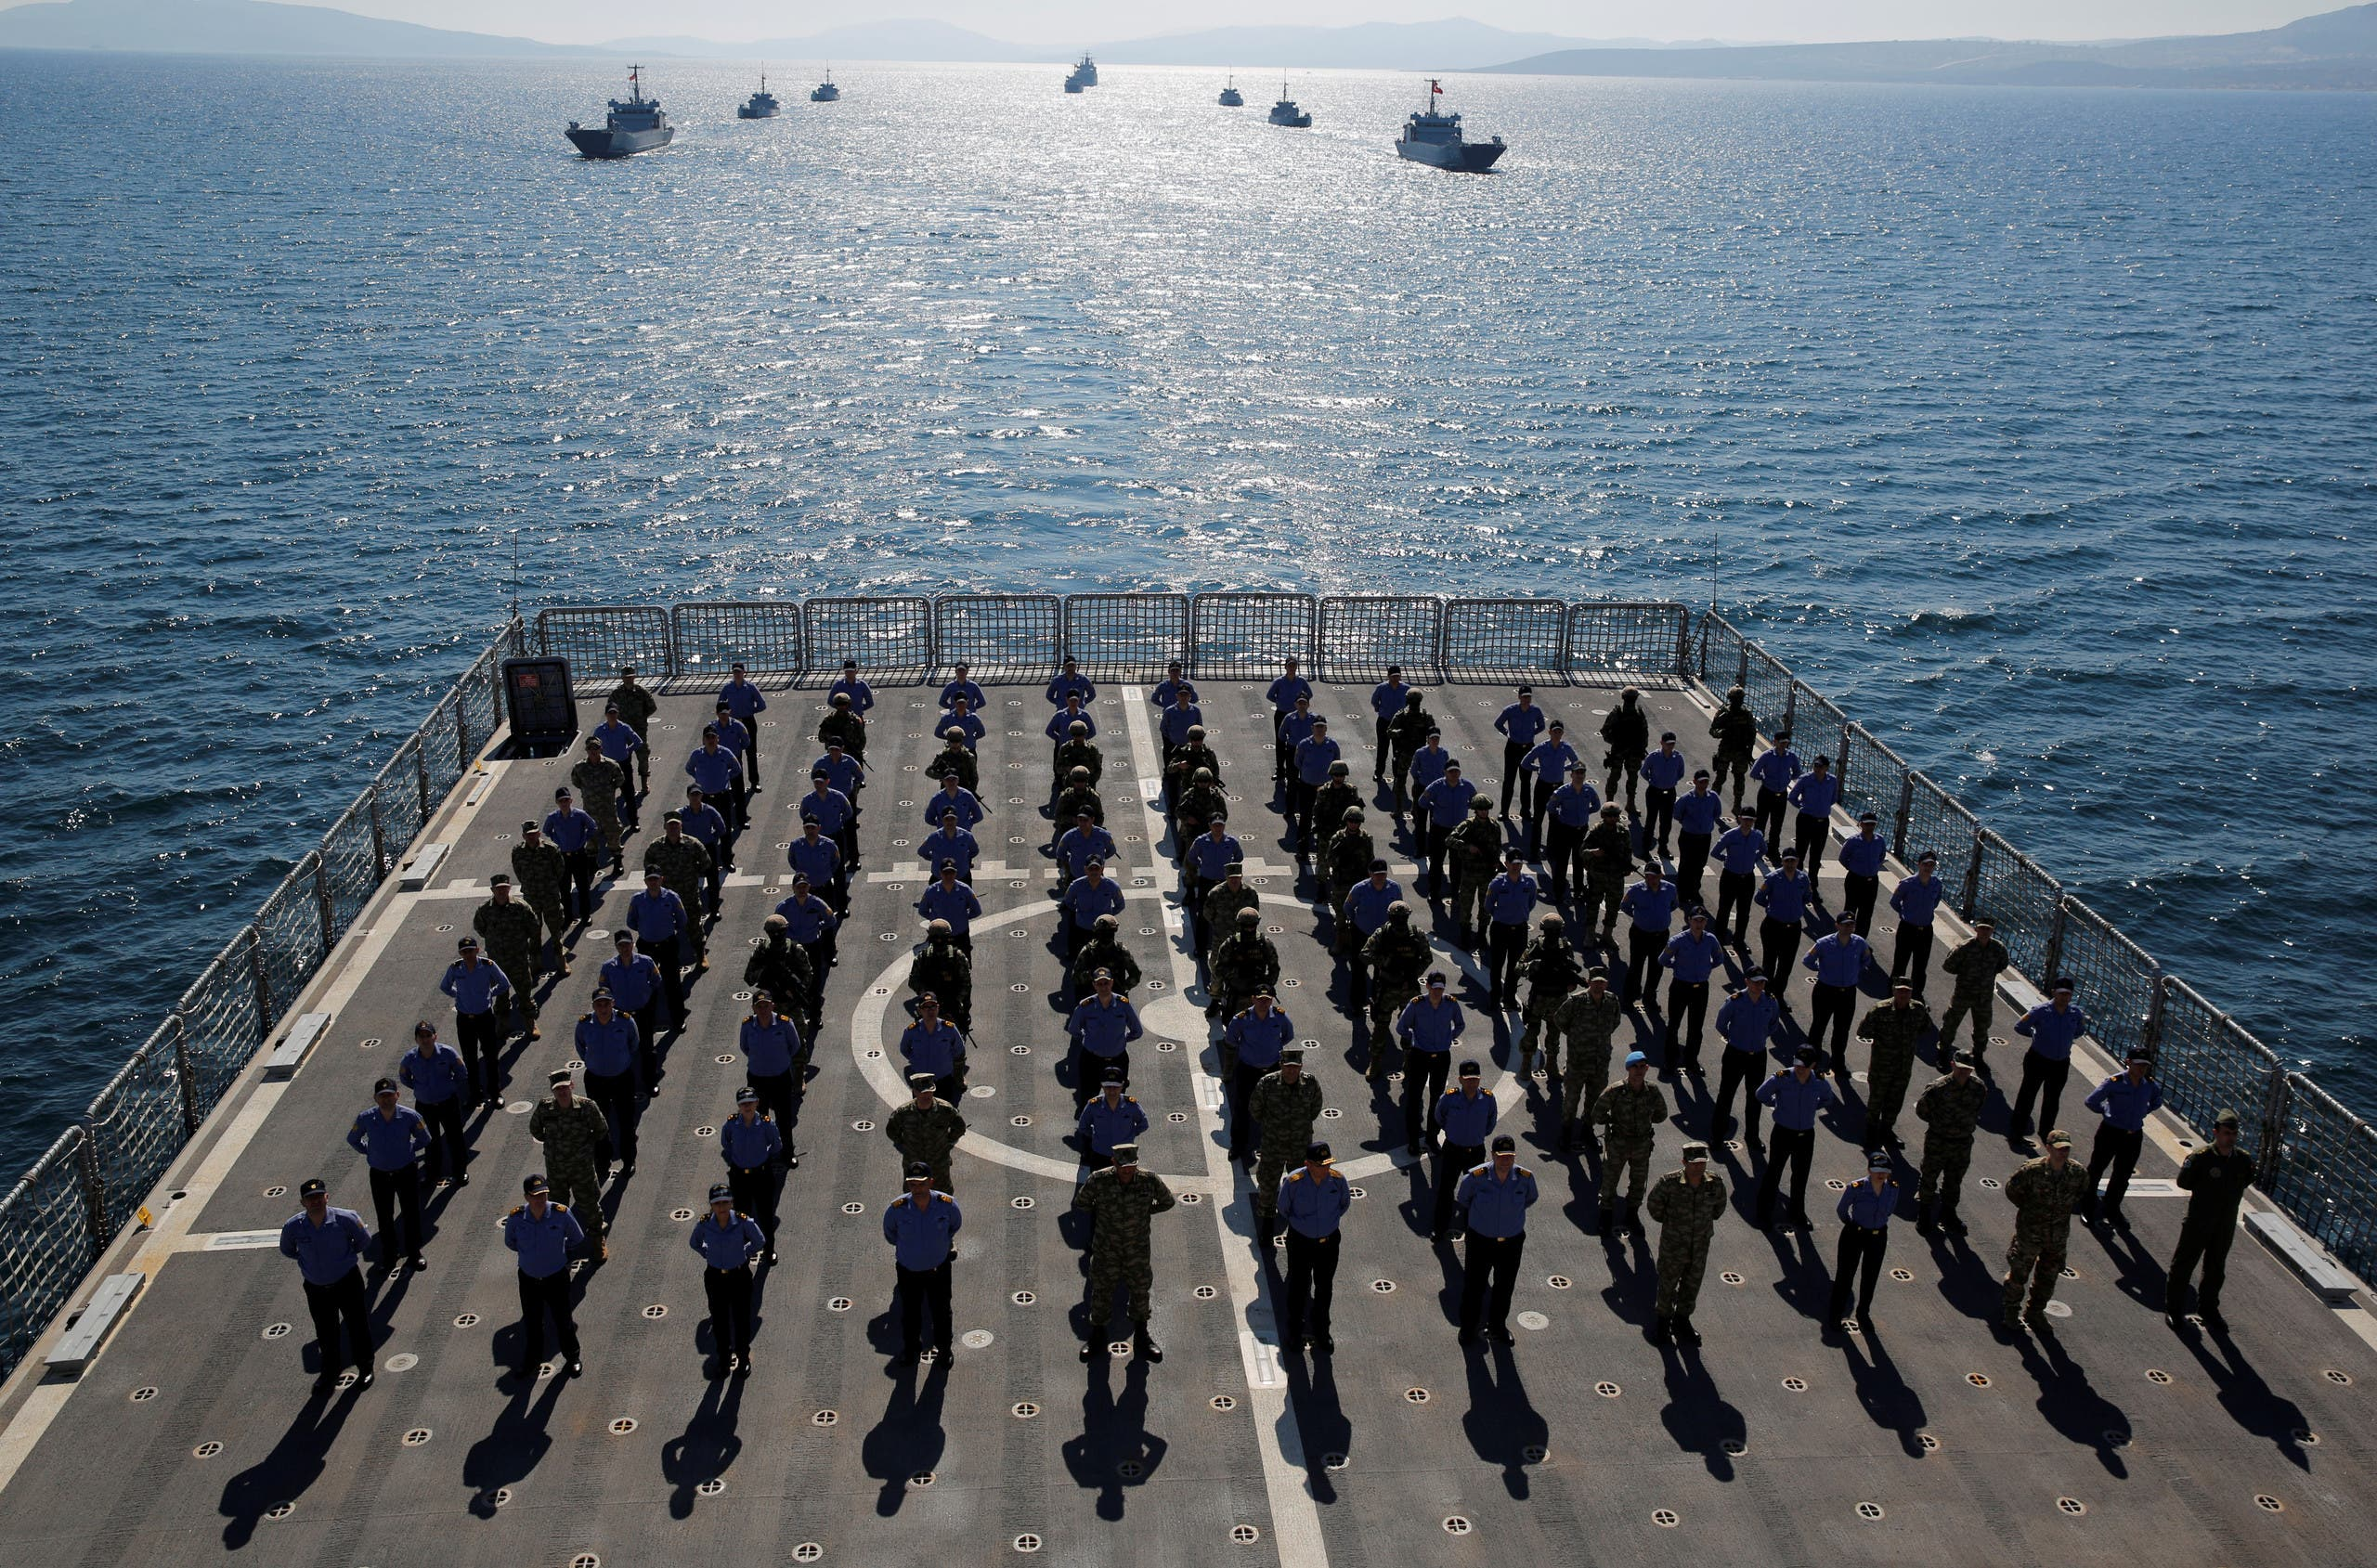 Crew members of the amphibious landing ship tank (LST) TCG Bayraktar (L-402) pose after a landing drill during the Blue Homeland naval exercise off the Aegean coastal town of Foca in Izmir Bay, Turkey. (Reuters)